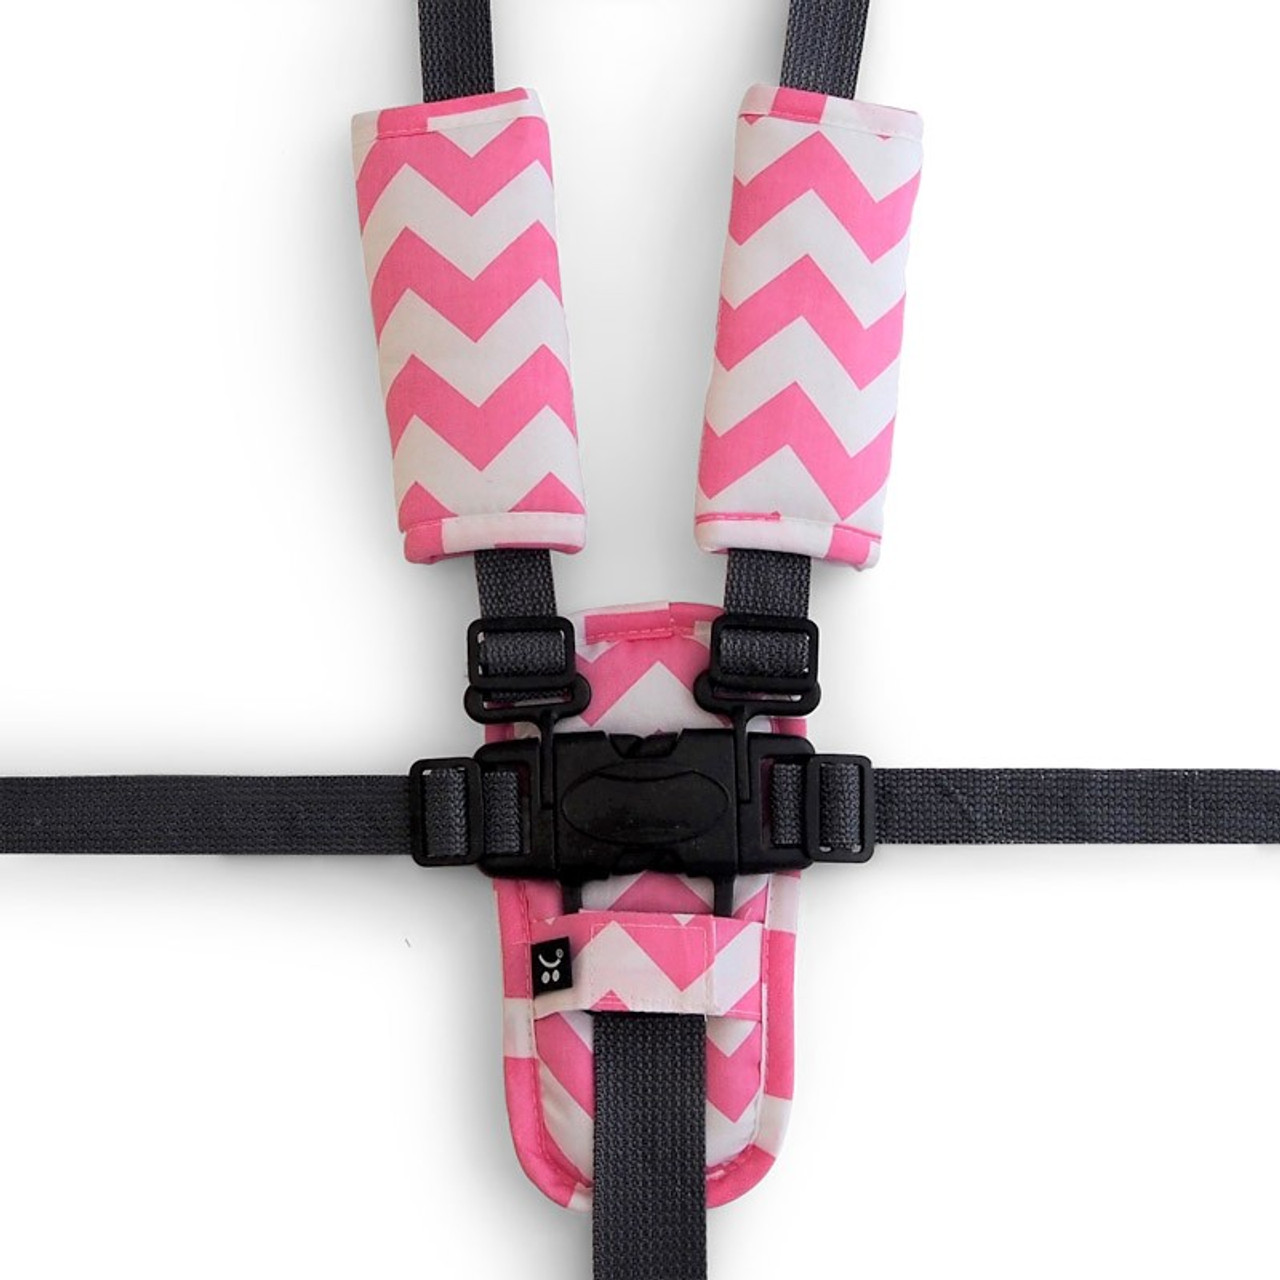 Outlook Pram Harness Cover Set - PINK CHEVRON